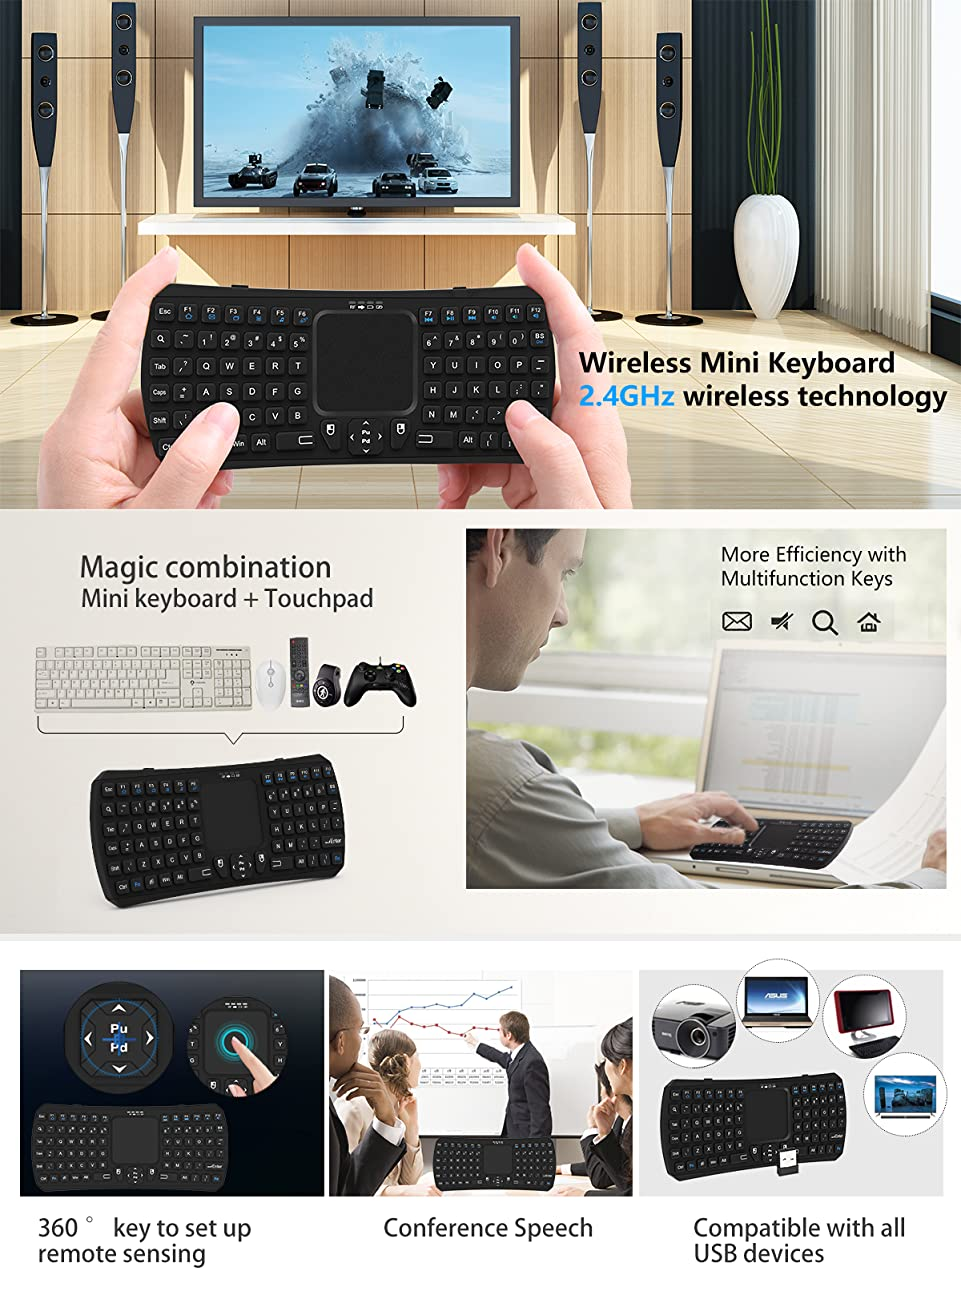 This Is A New High Grade 24G Mini Keyboard With Touch Pad Features Reliability Ease Of Use And User Comfort Wireless Will Exceed Your